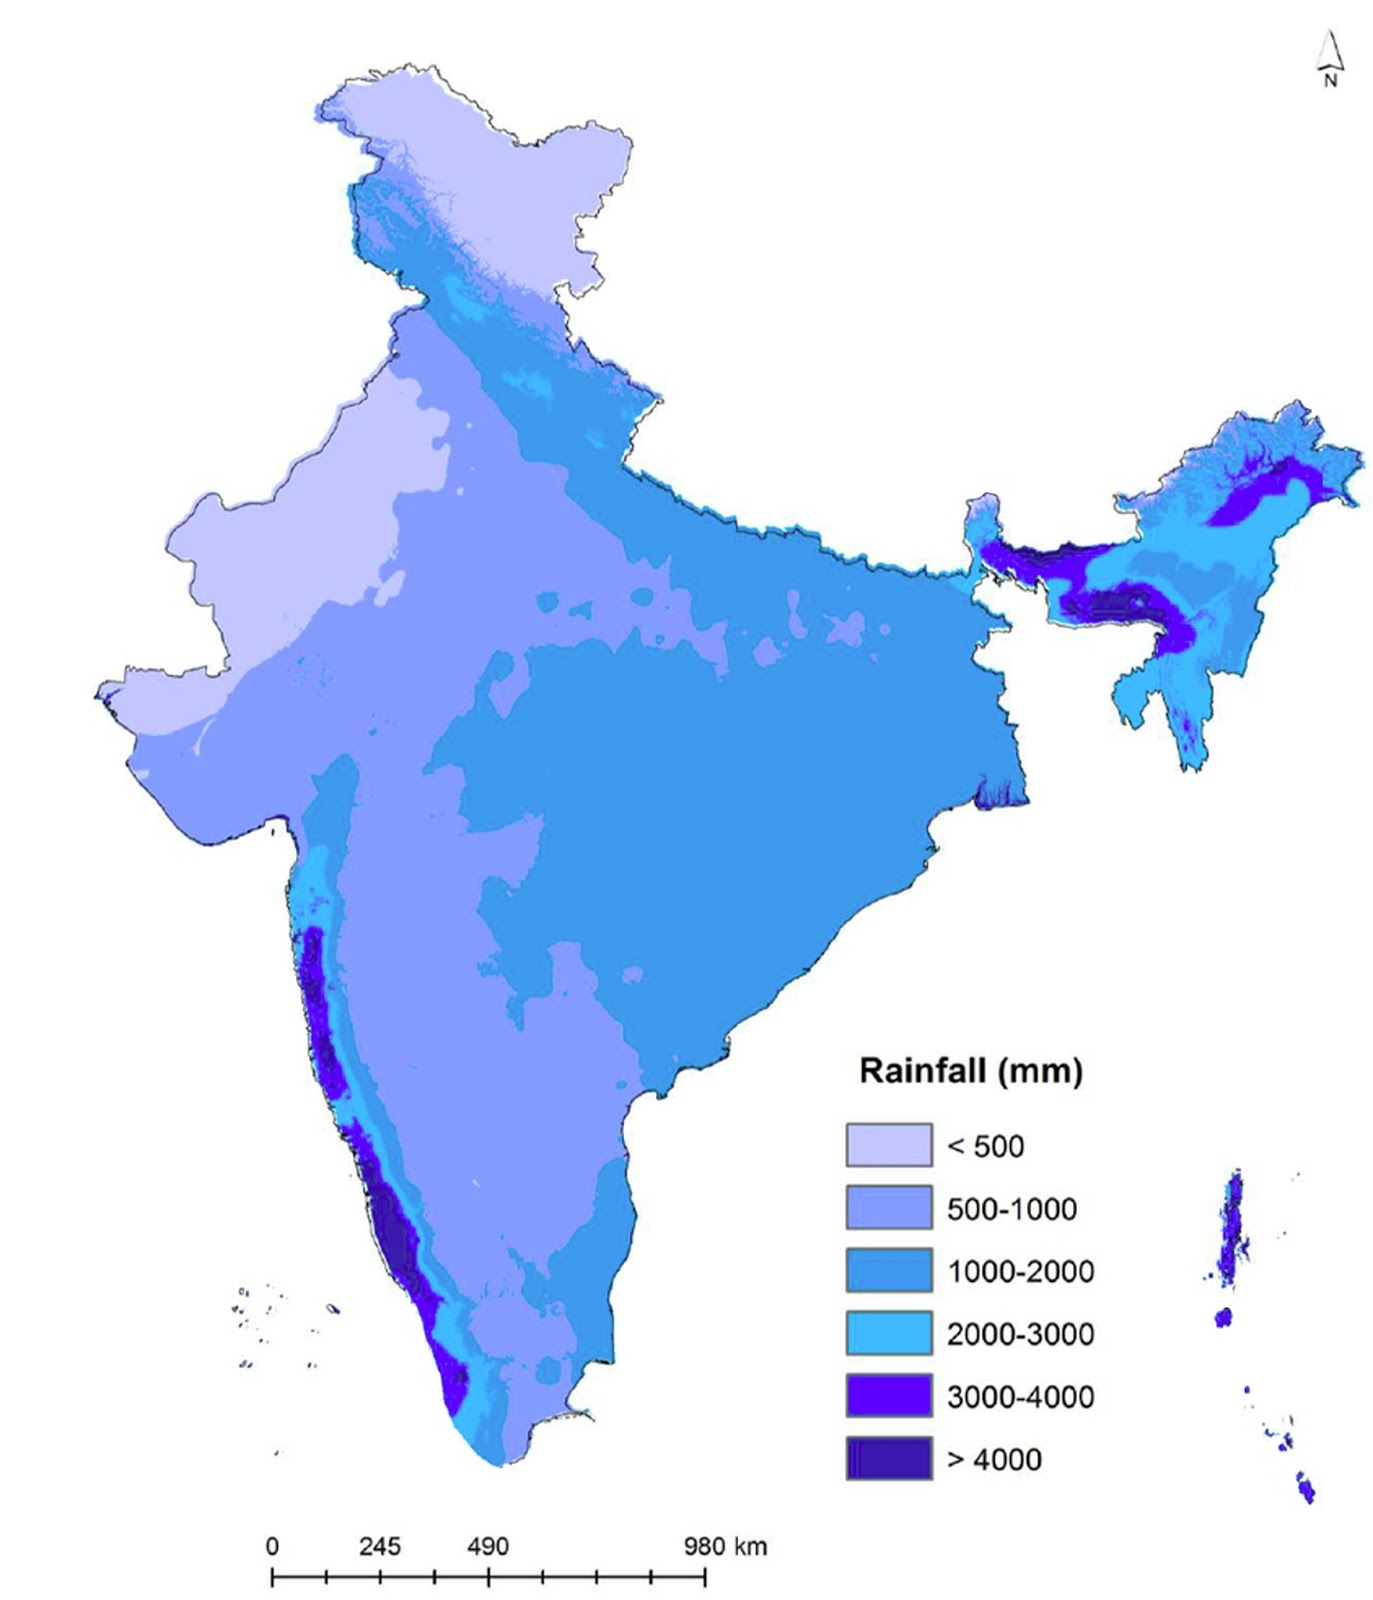 south korea japan map with Annual Rainfall Map Of India on Cruzando El Paralelo 38 as well Average Iq By Country as well Things To Do In Muscat furthermore Contact also Forecastimages.